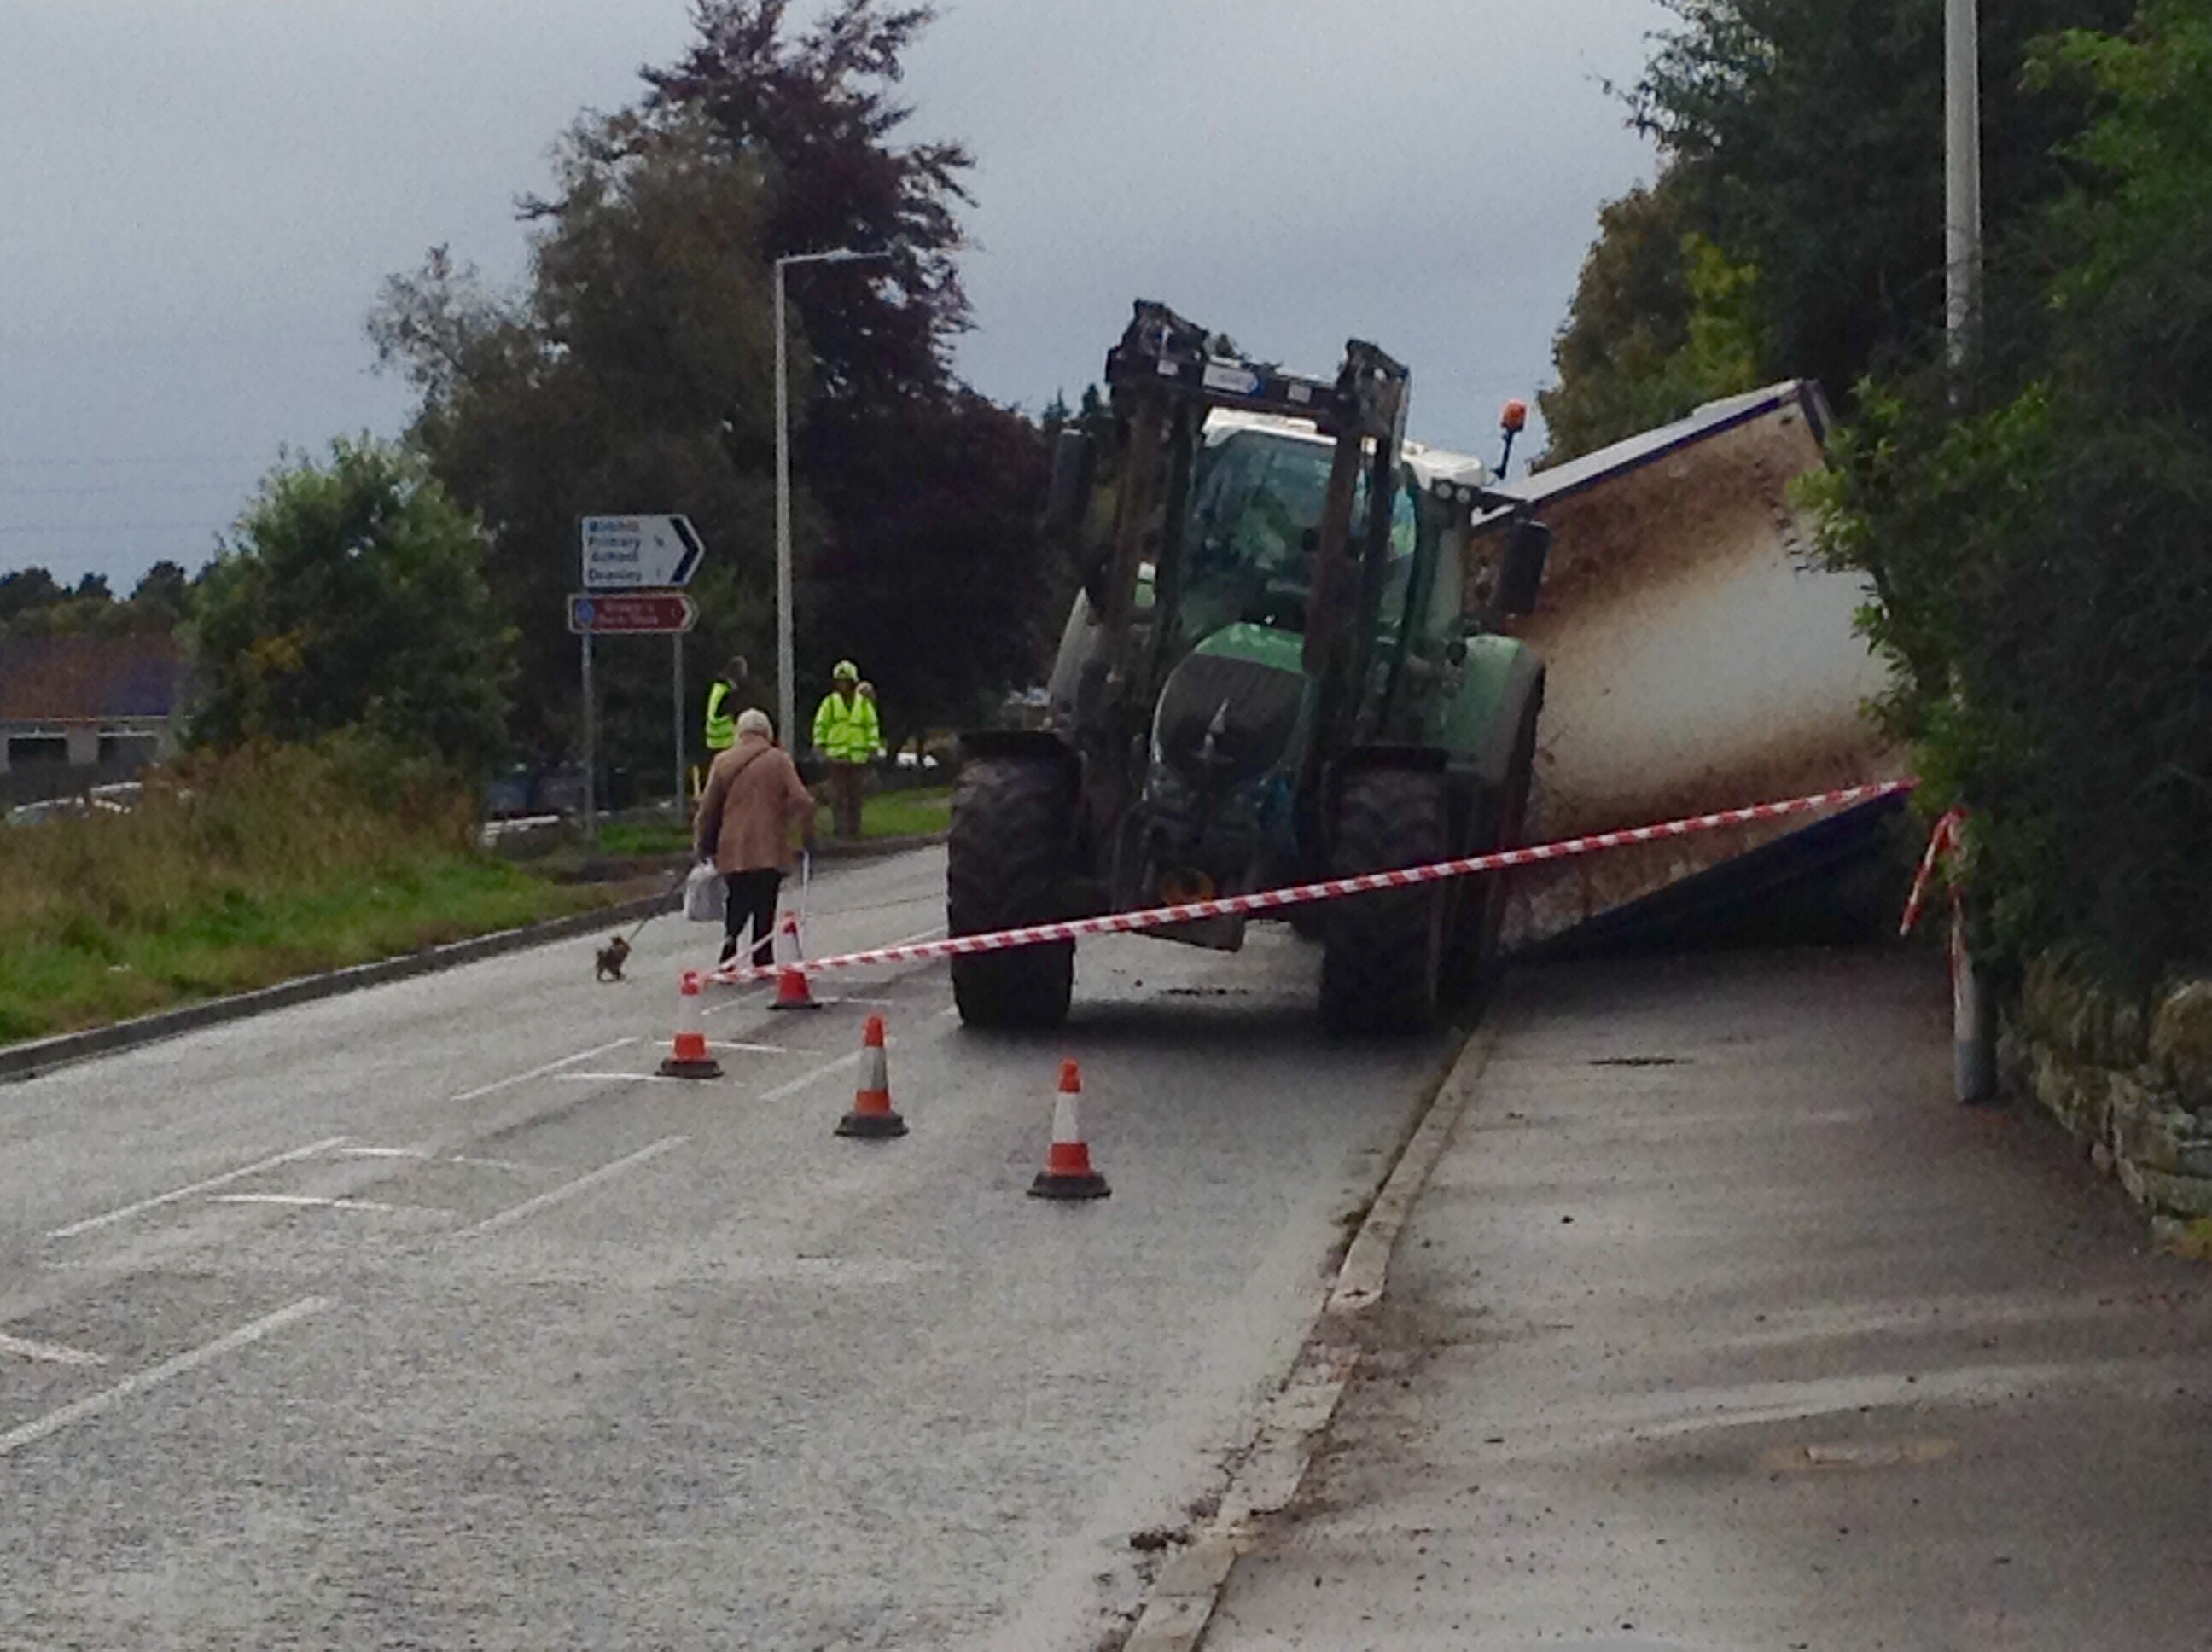 The tractor trailer overturned in Birkhill